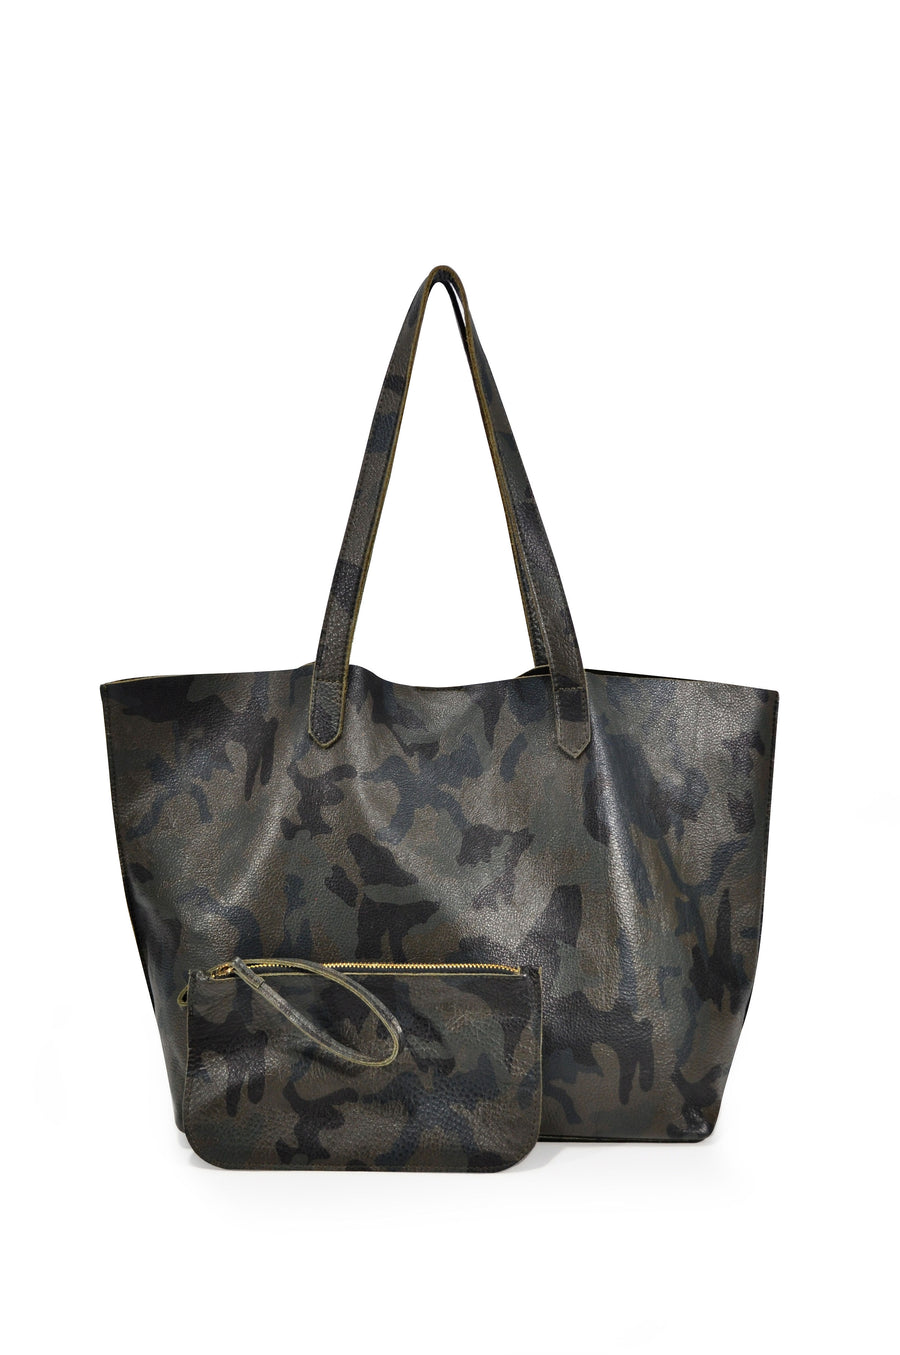 Edge Leather Tote Green Camo - Positive Elements